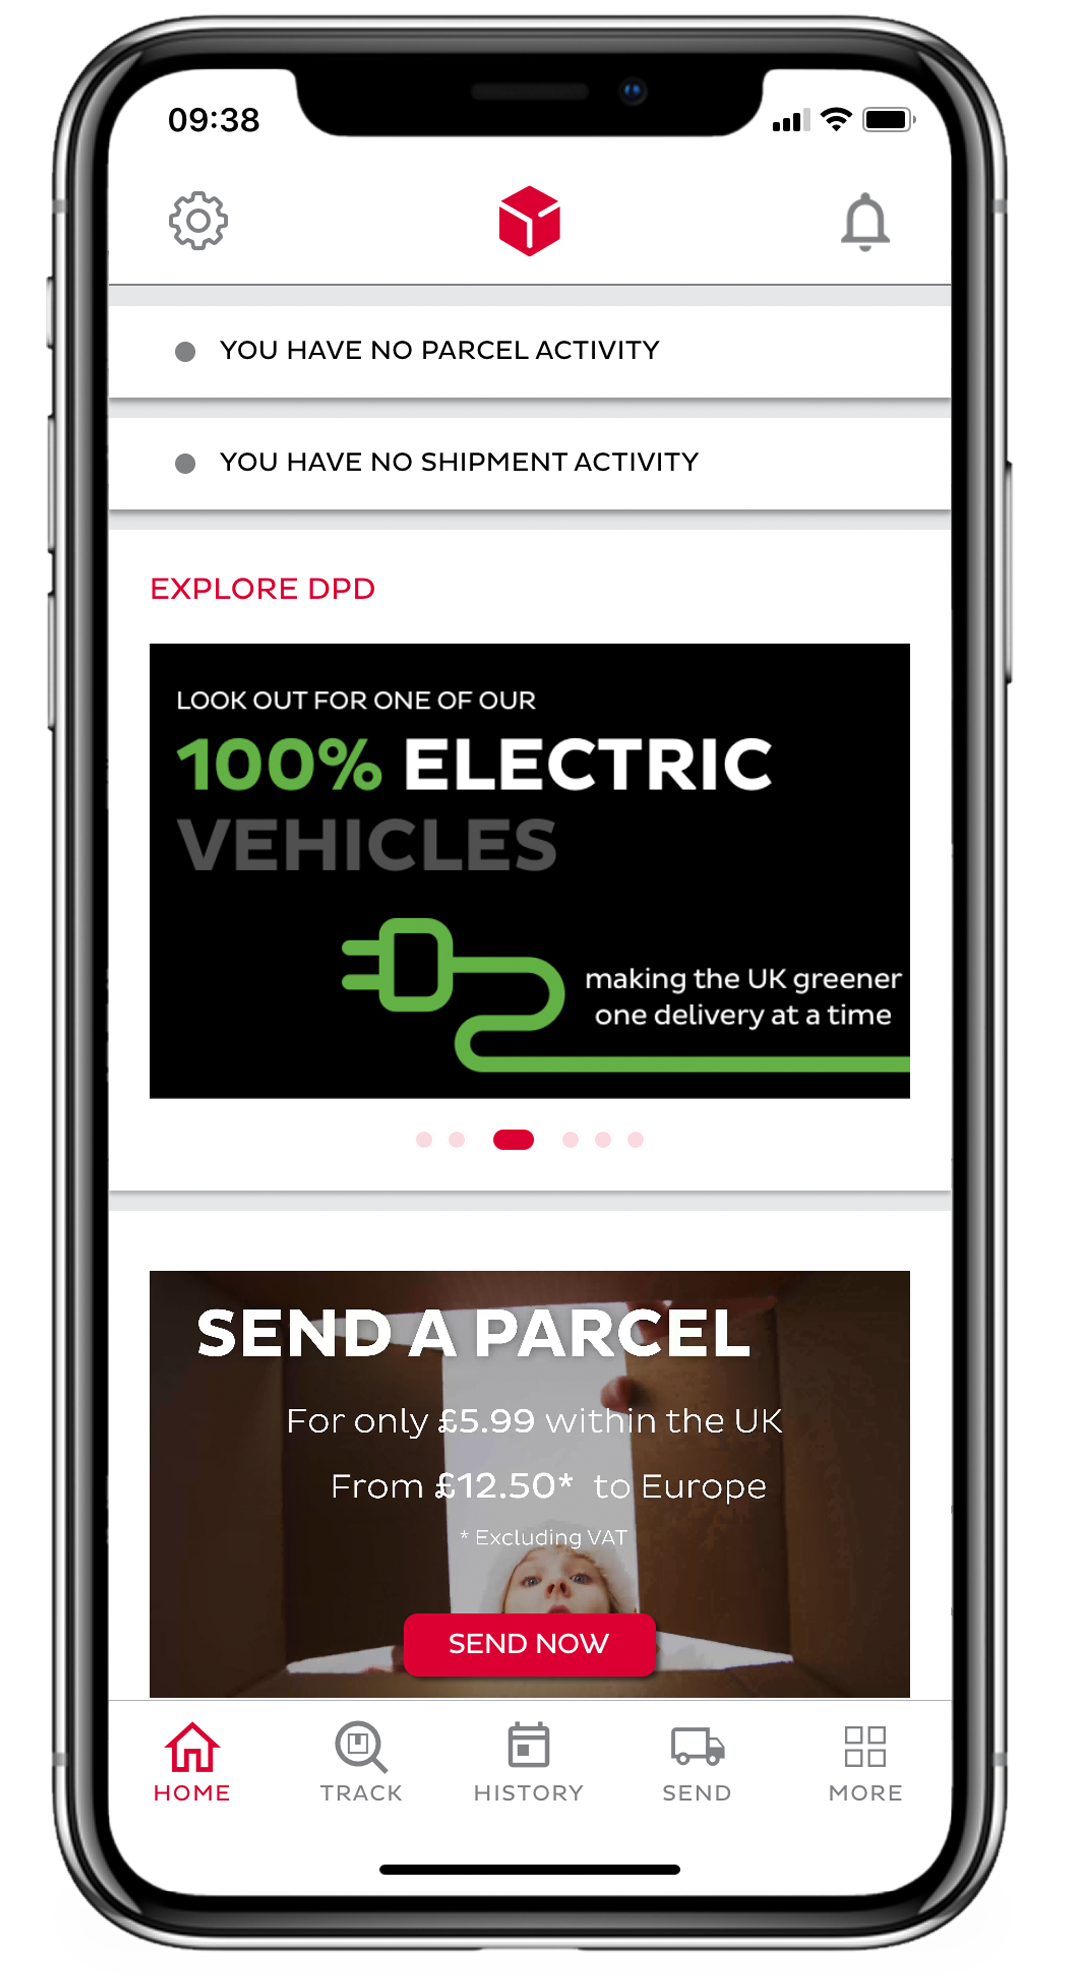 DPD UK | Your DPD | Never miss a parcel delivery again!